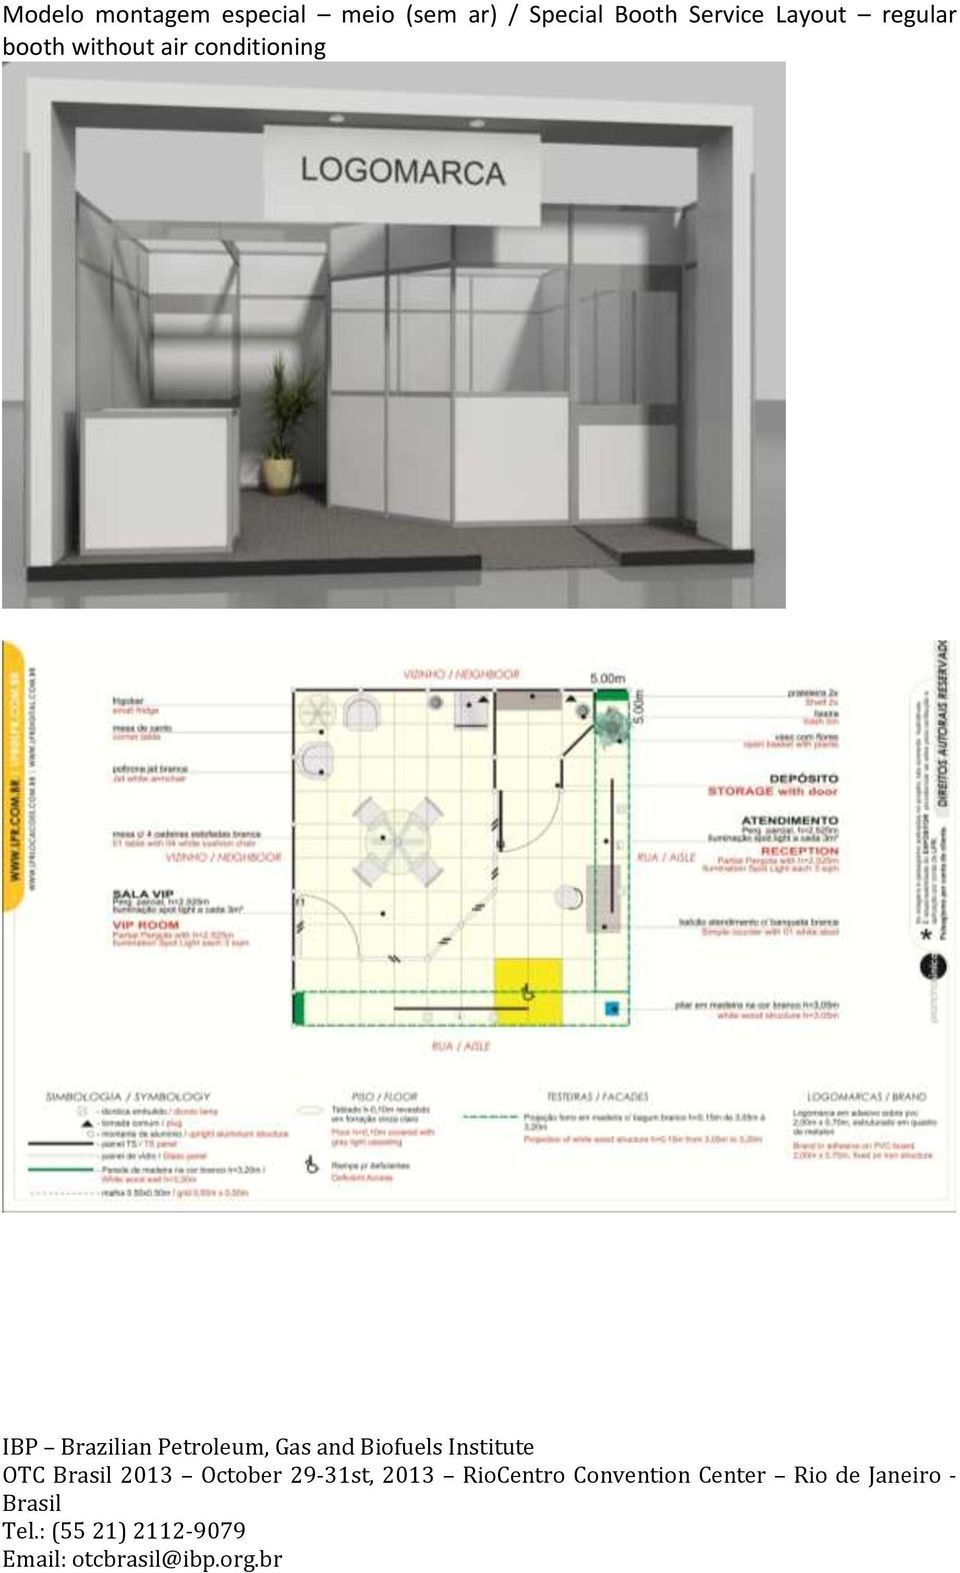 Booth Service Layout